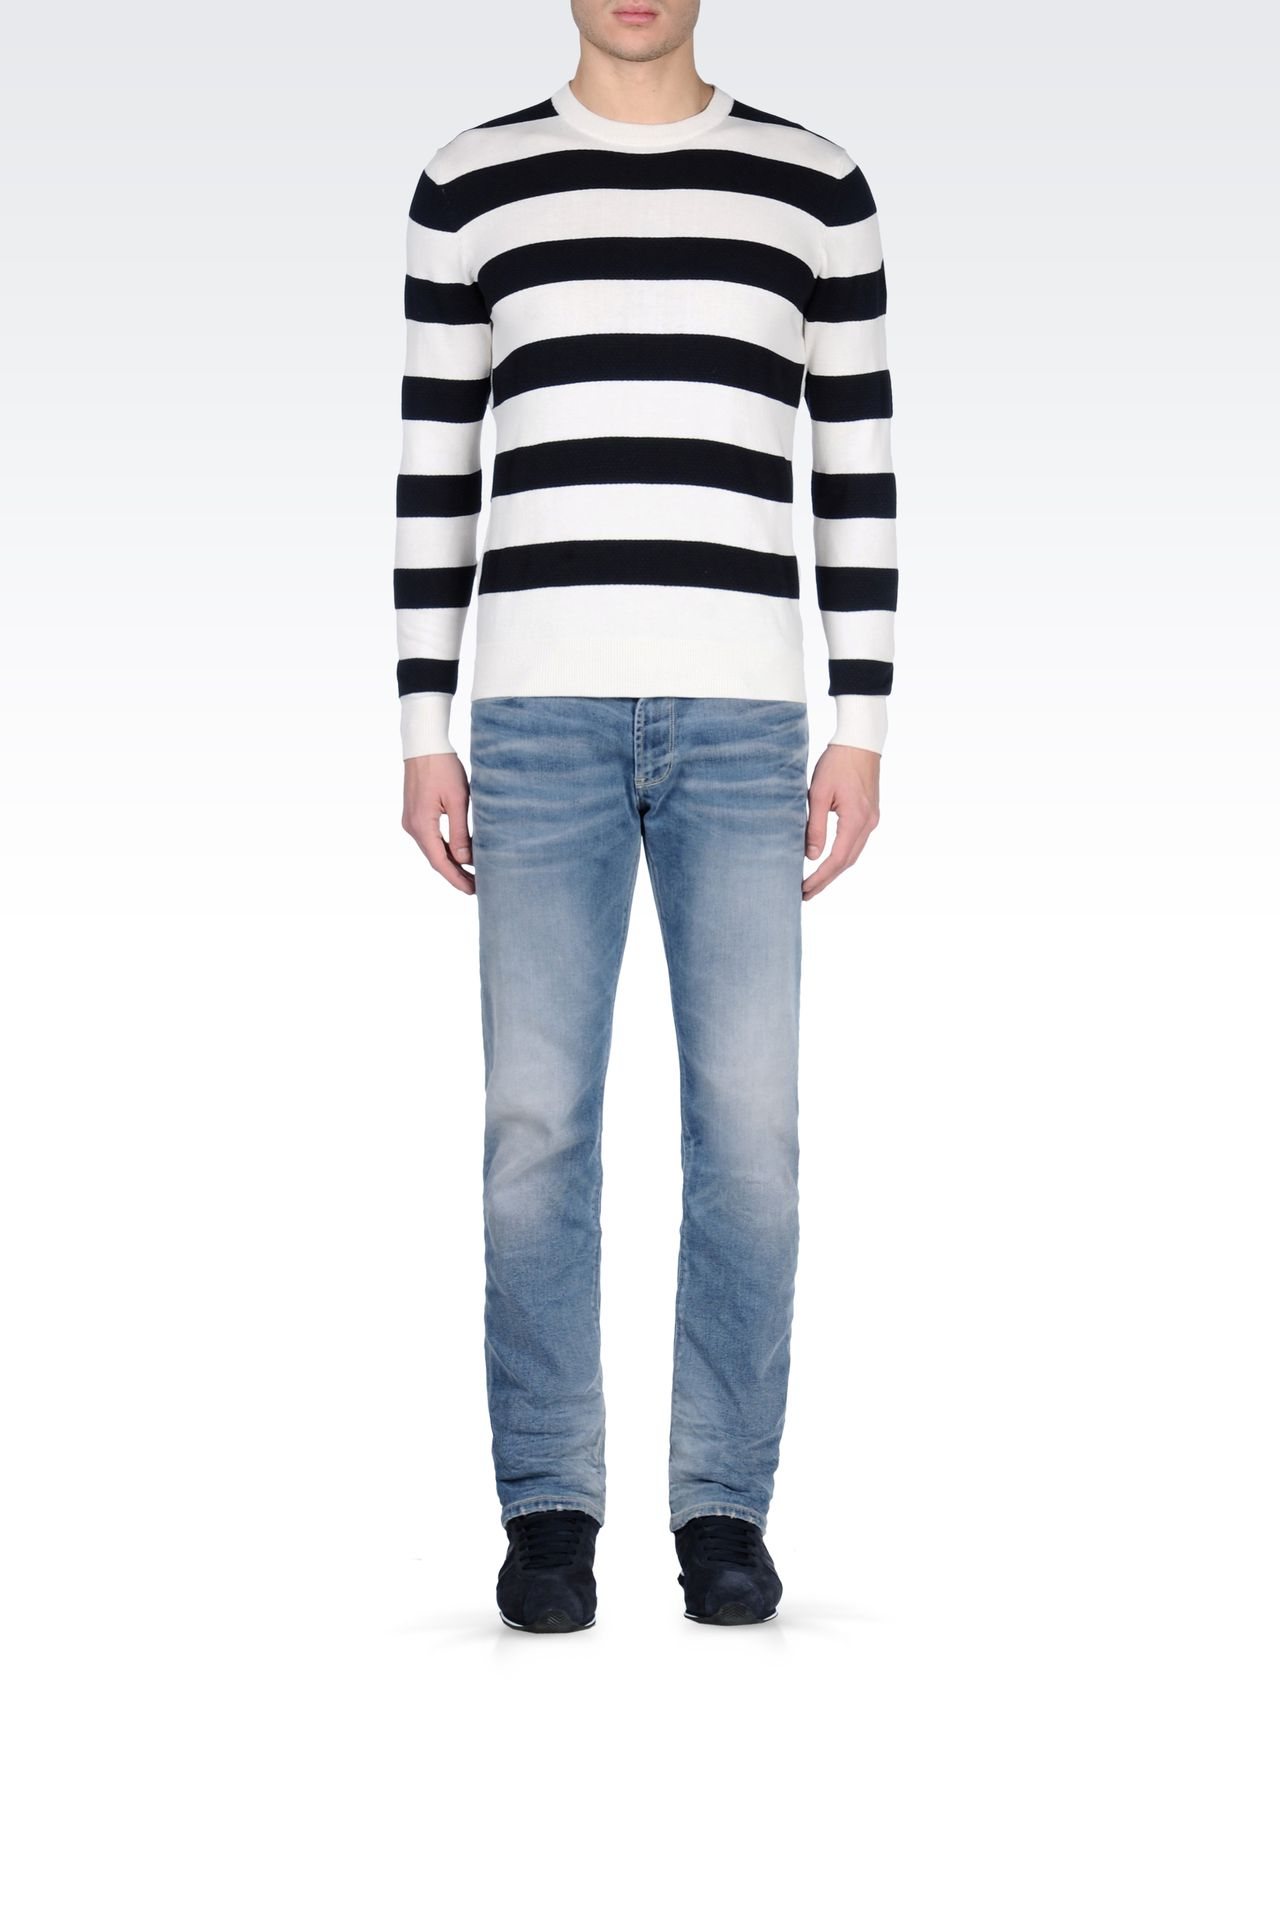 Armani Jeans Men Crewneck Sweater - STRIPED CREW NECK SWEATER Armani Jeans Official Online Store